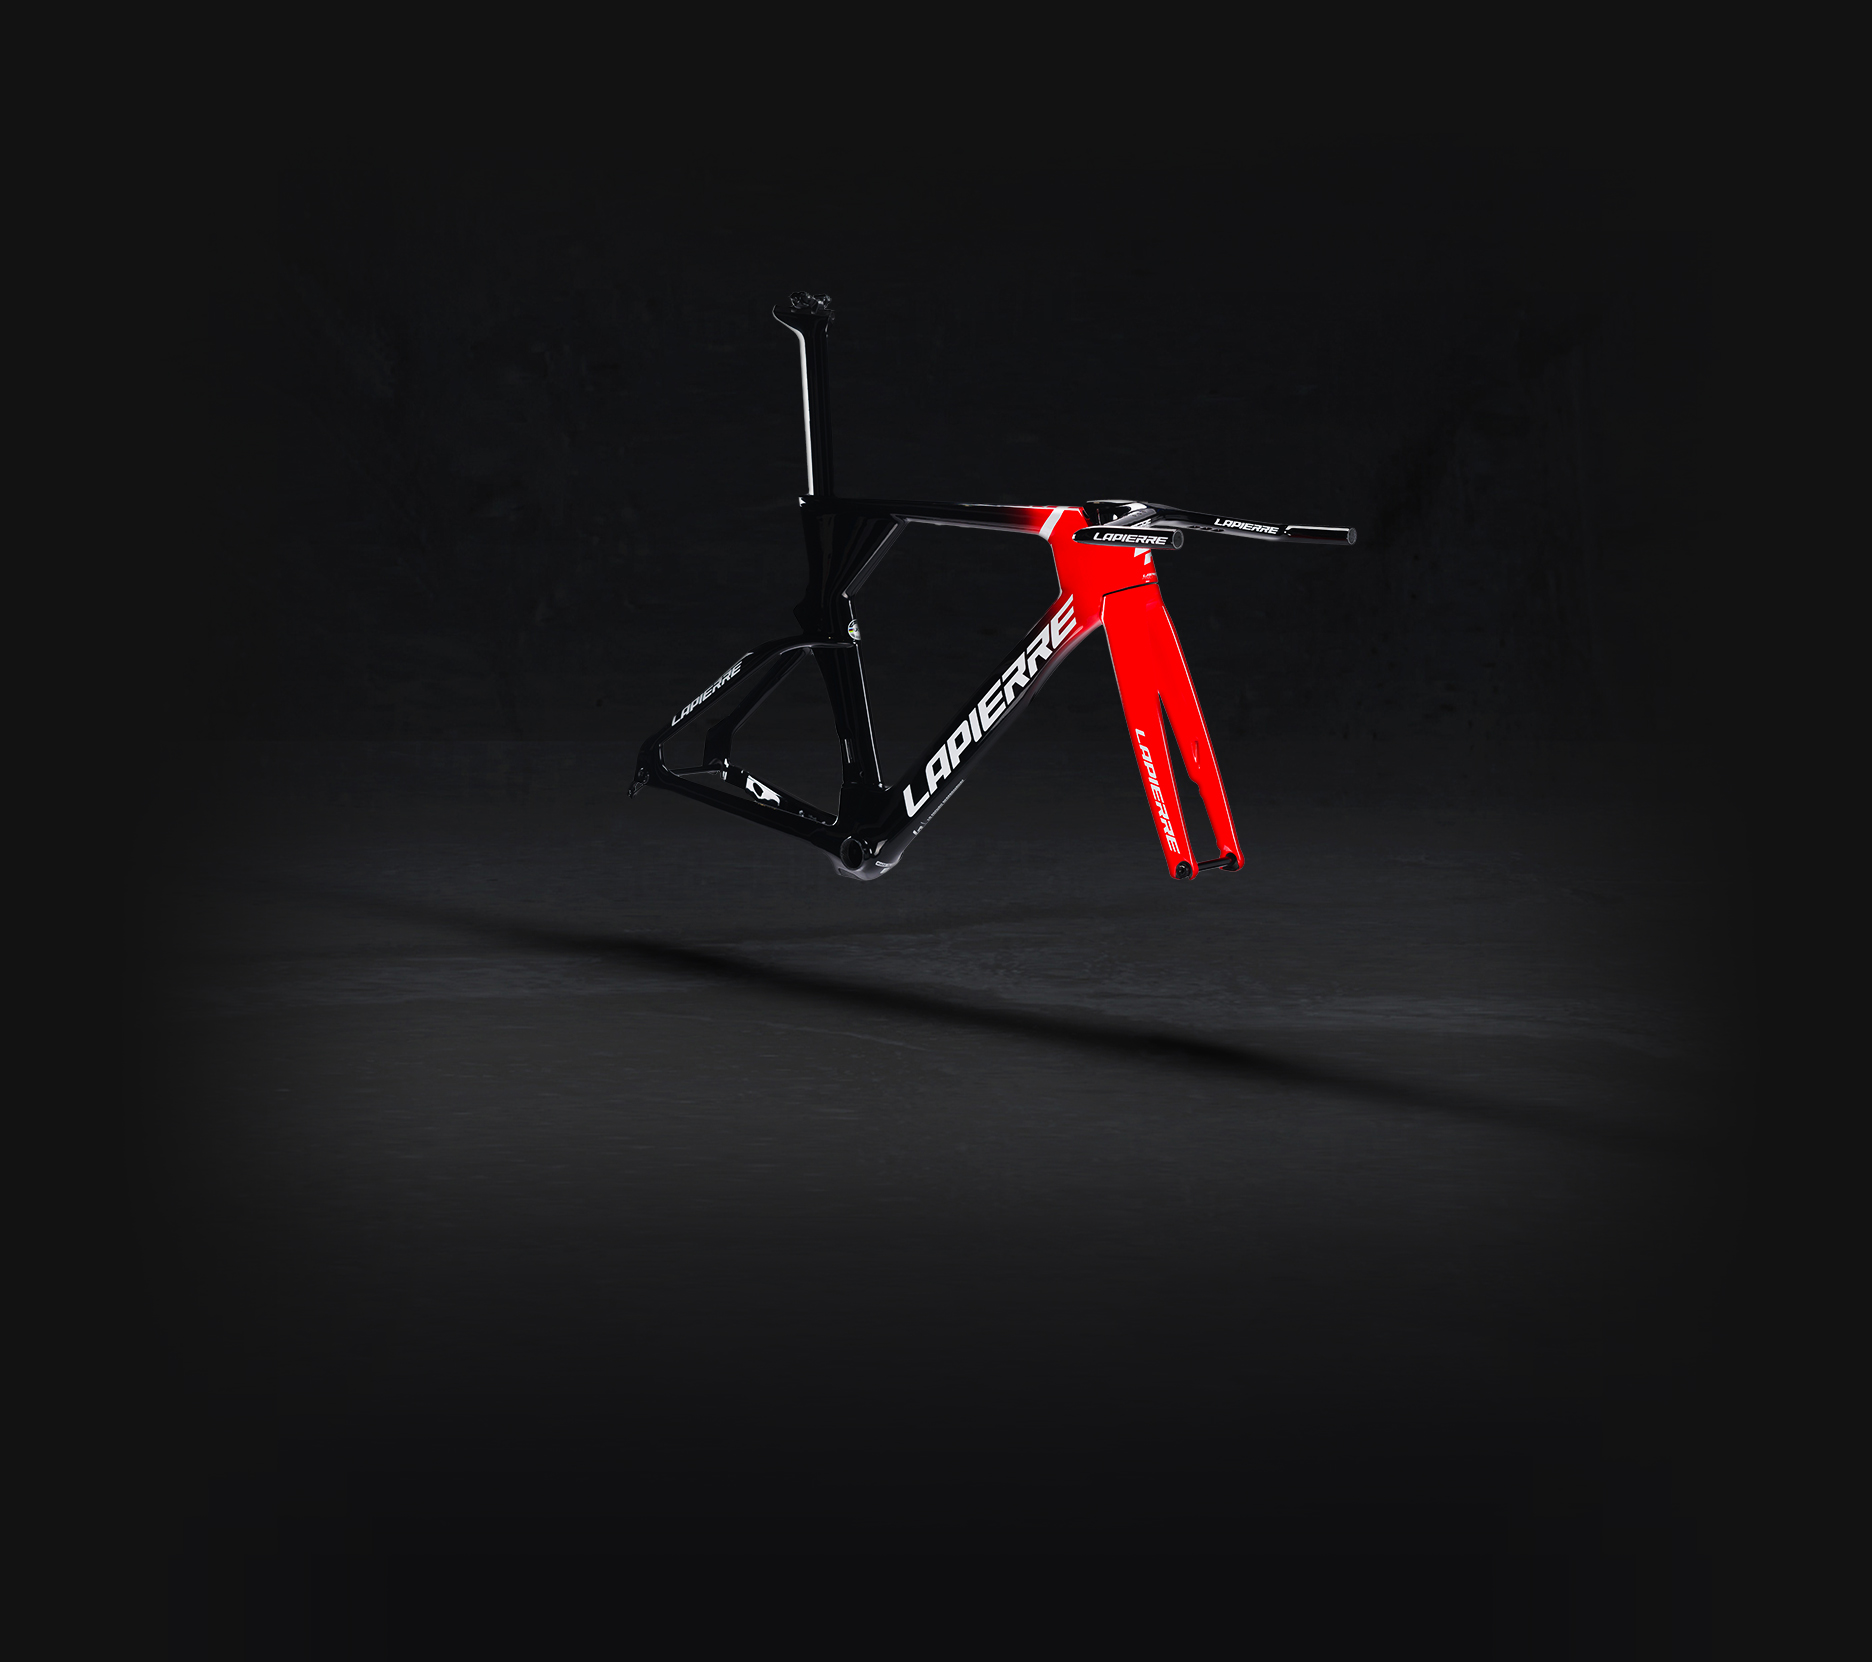 Lapierre Aerostorm DRS frame kit three-quarter front right side view on a black background